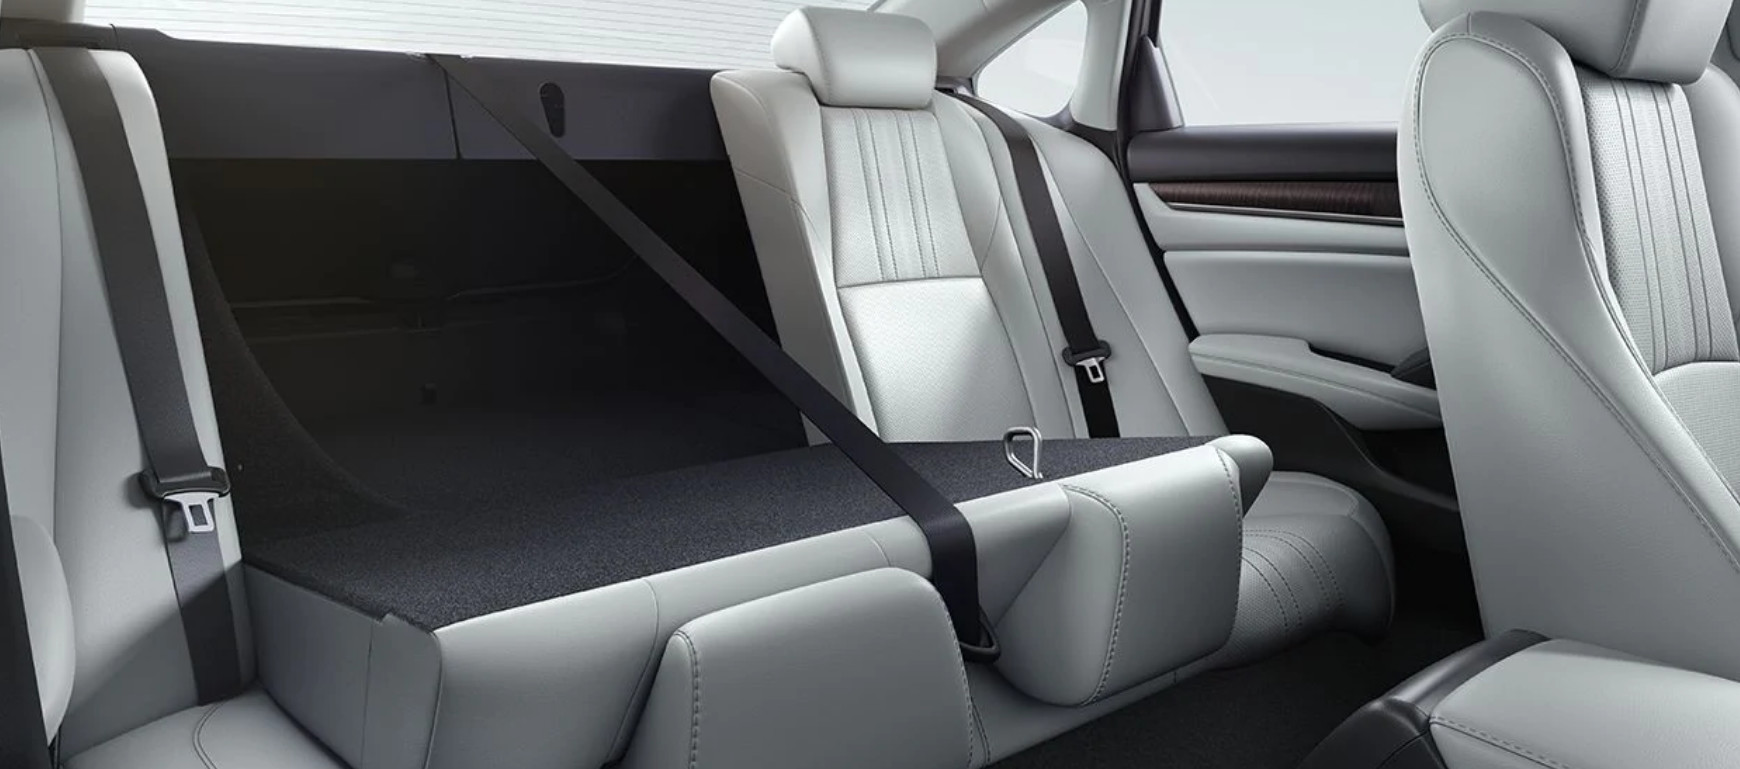 Second Row of the 2020 Accord